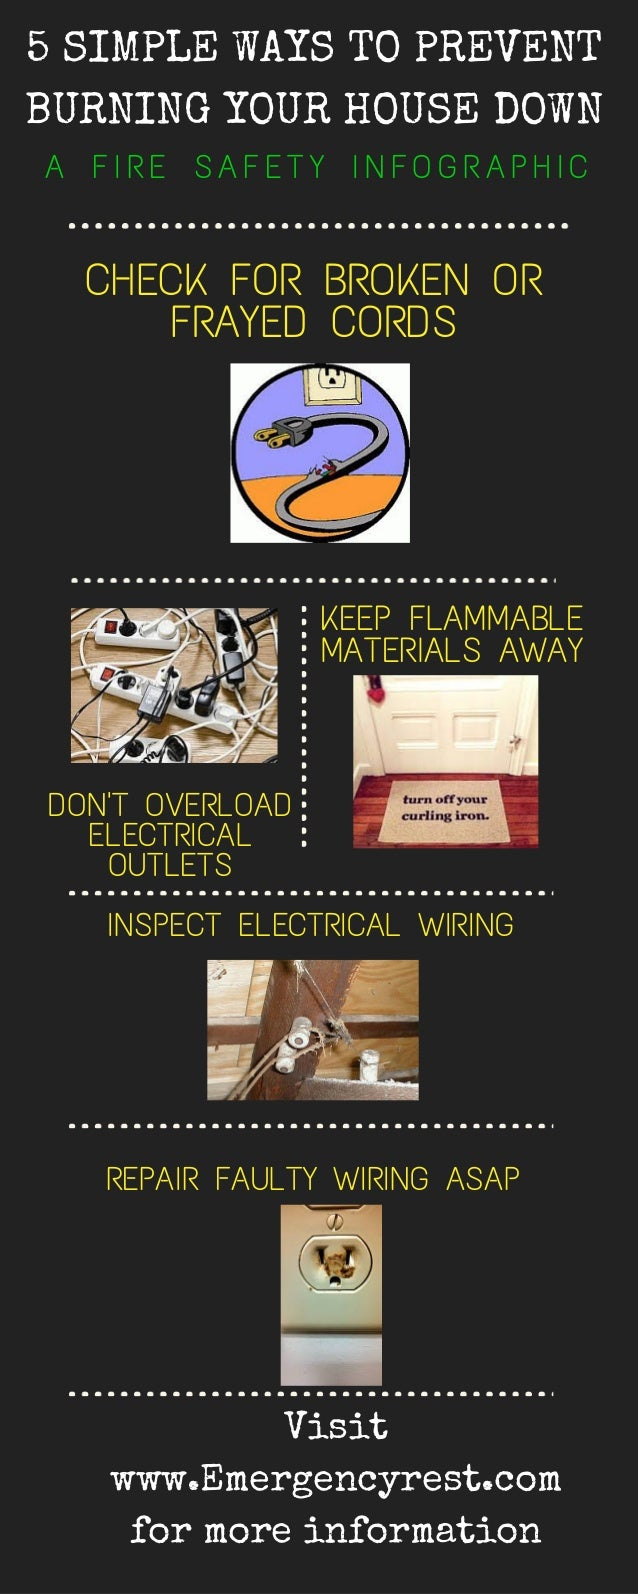 Home Fire Safety Infographic House Wiring Check For Broken Or Frayed Cords Repair Faulty Asap Inspect Electrical Dont